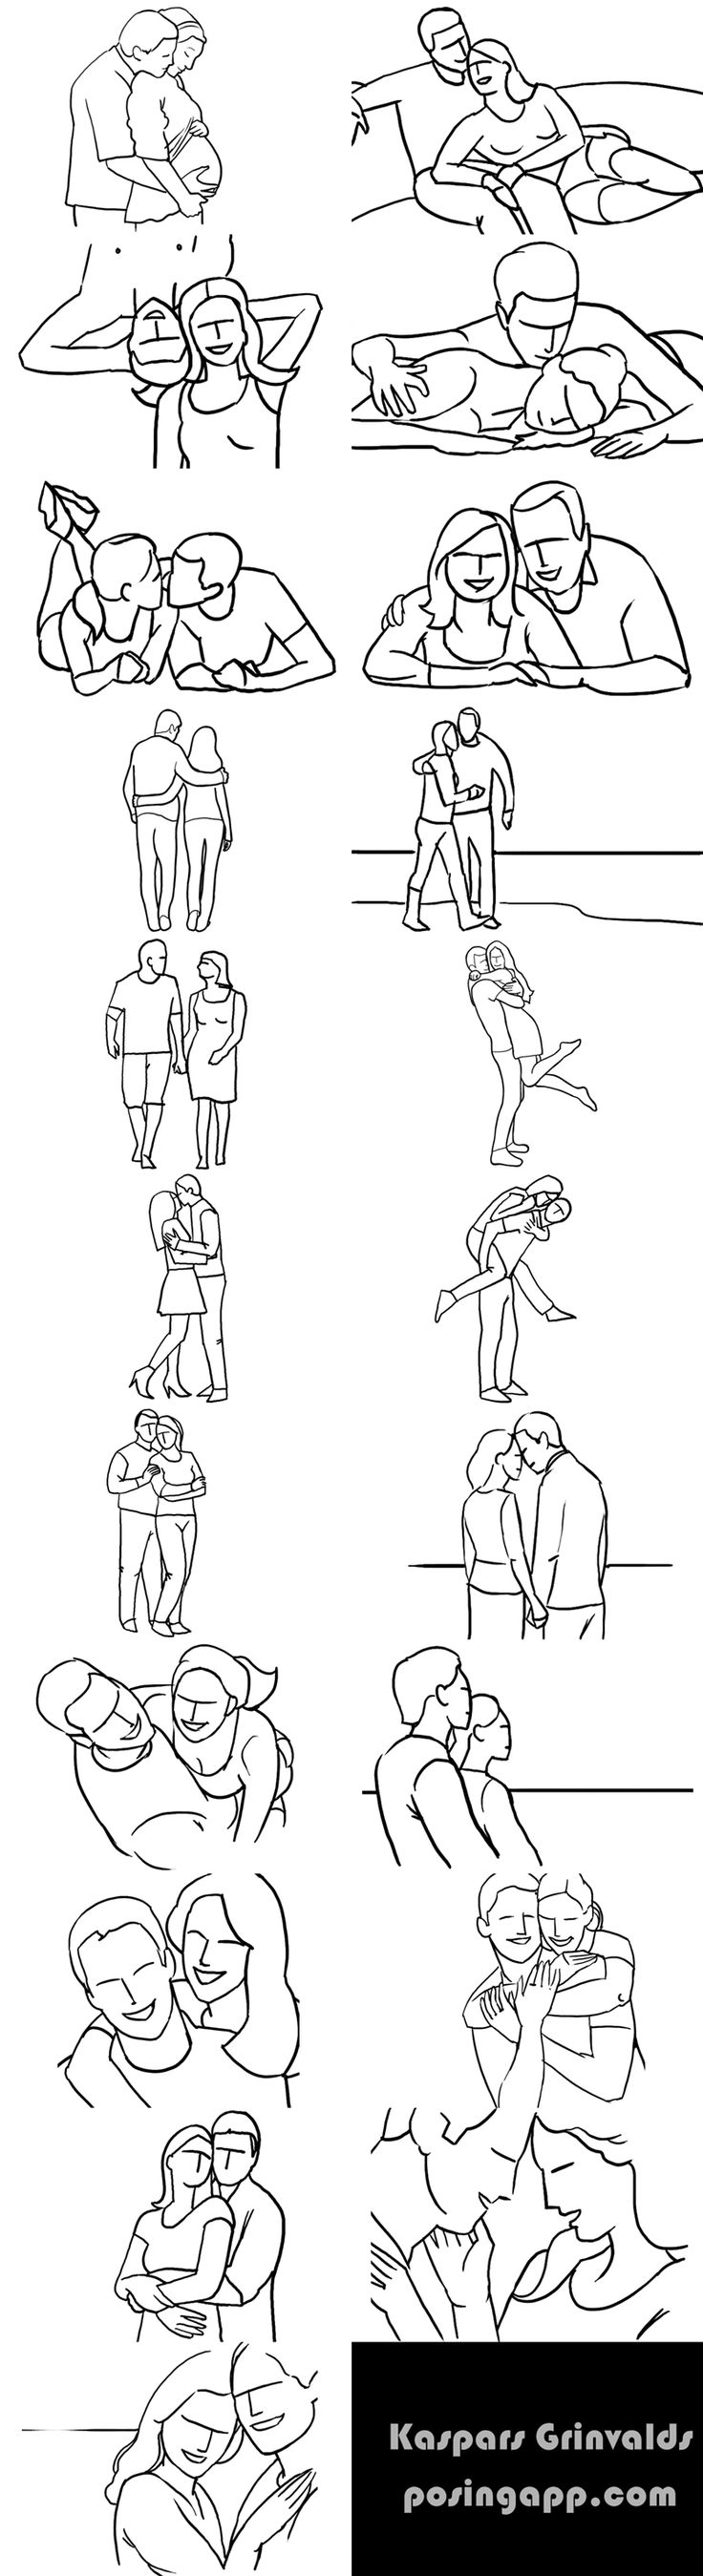 ideas for couple poses...